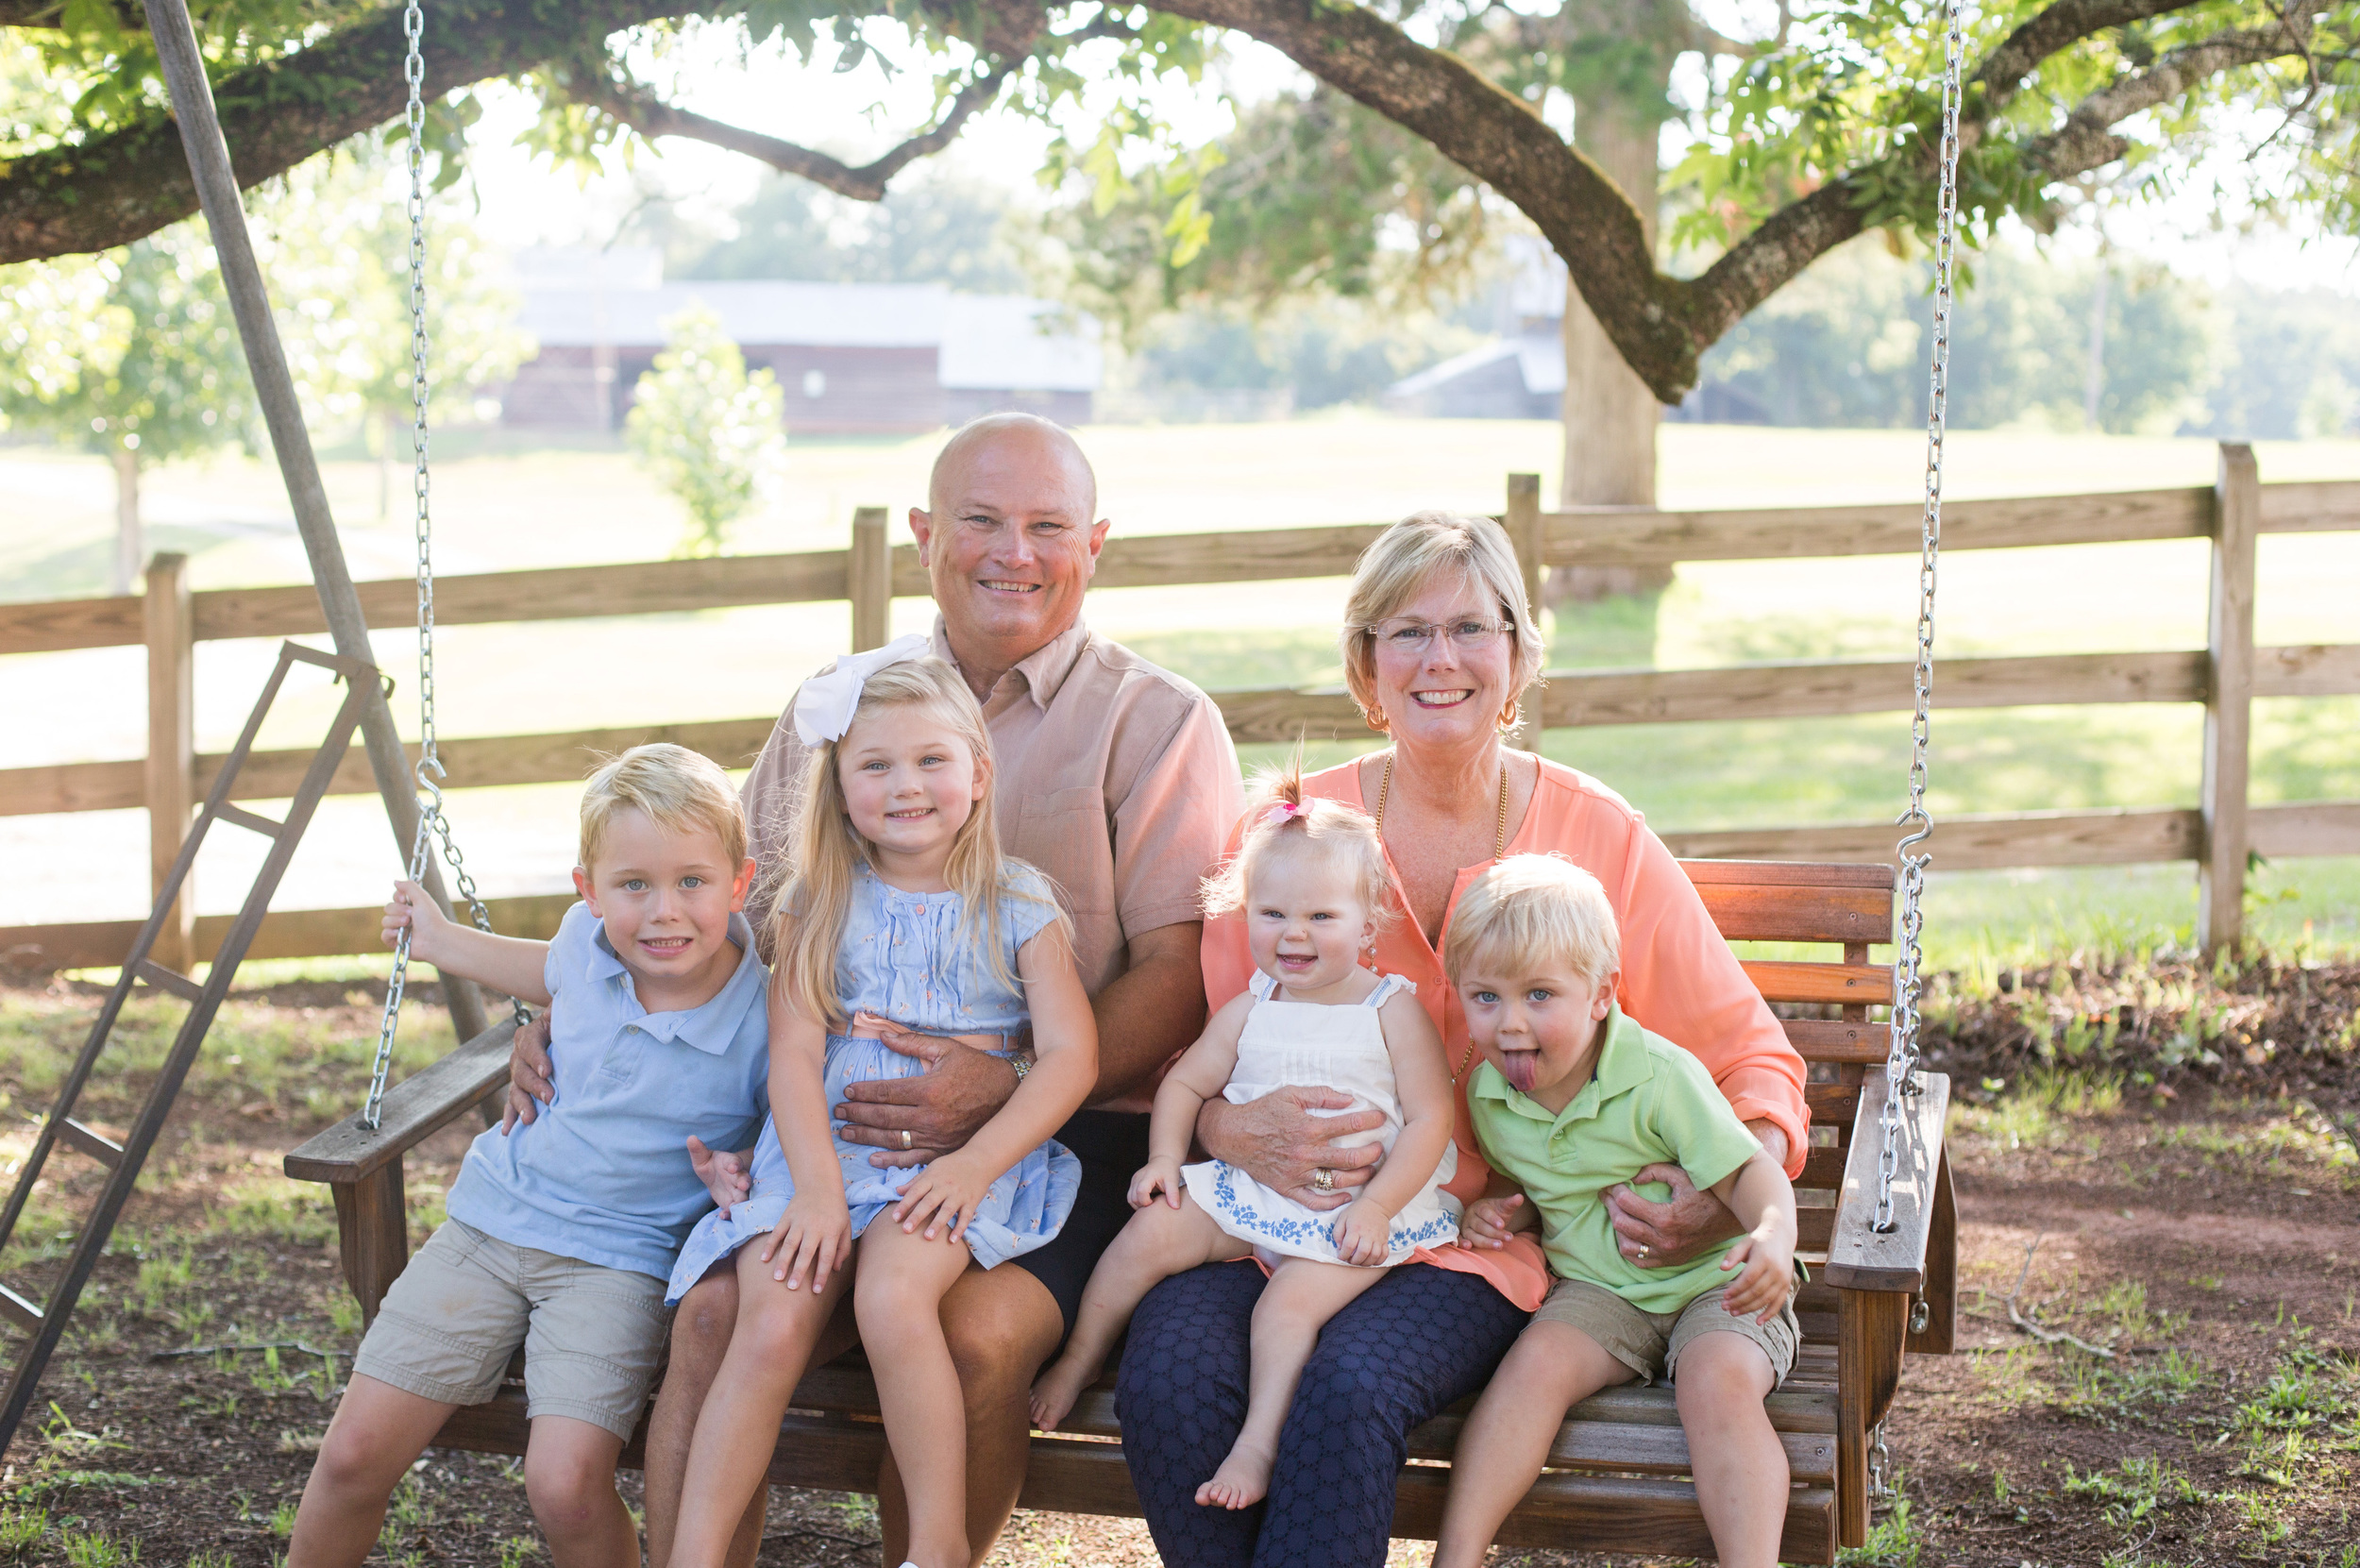 Collins_Family_2015_Appling_Georgia004.jpg